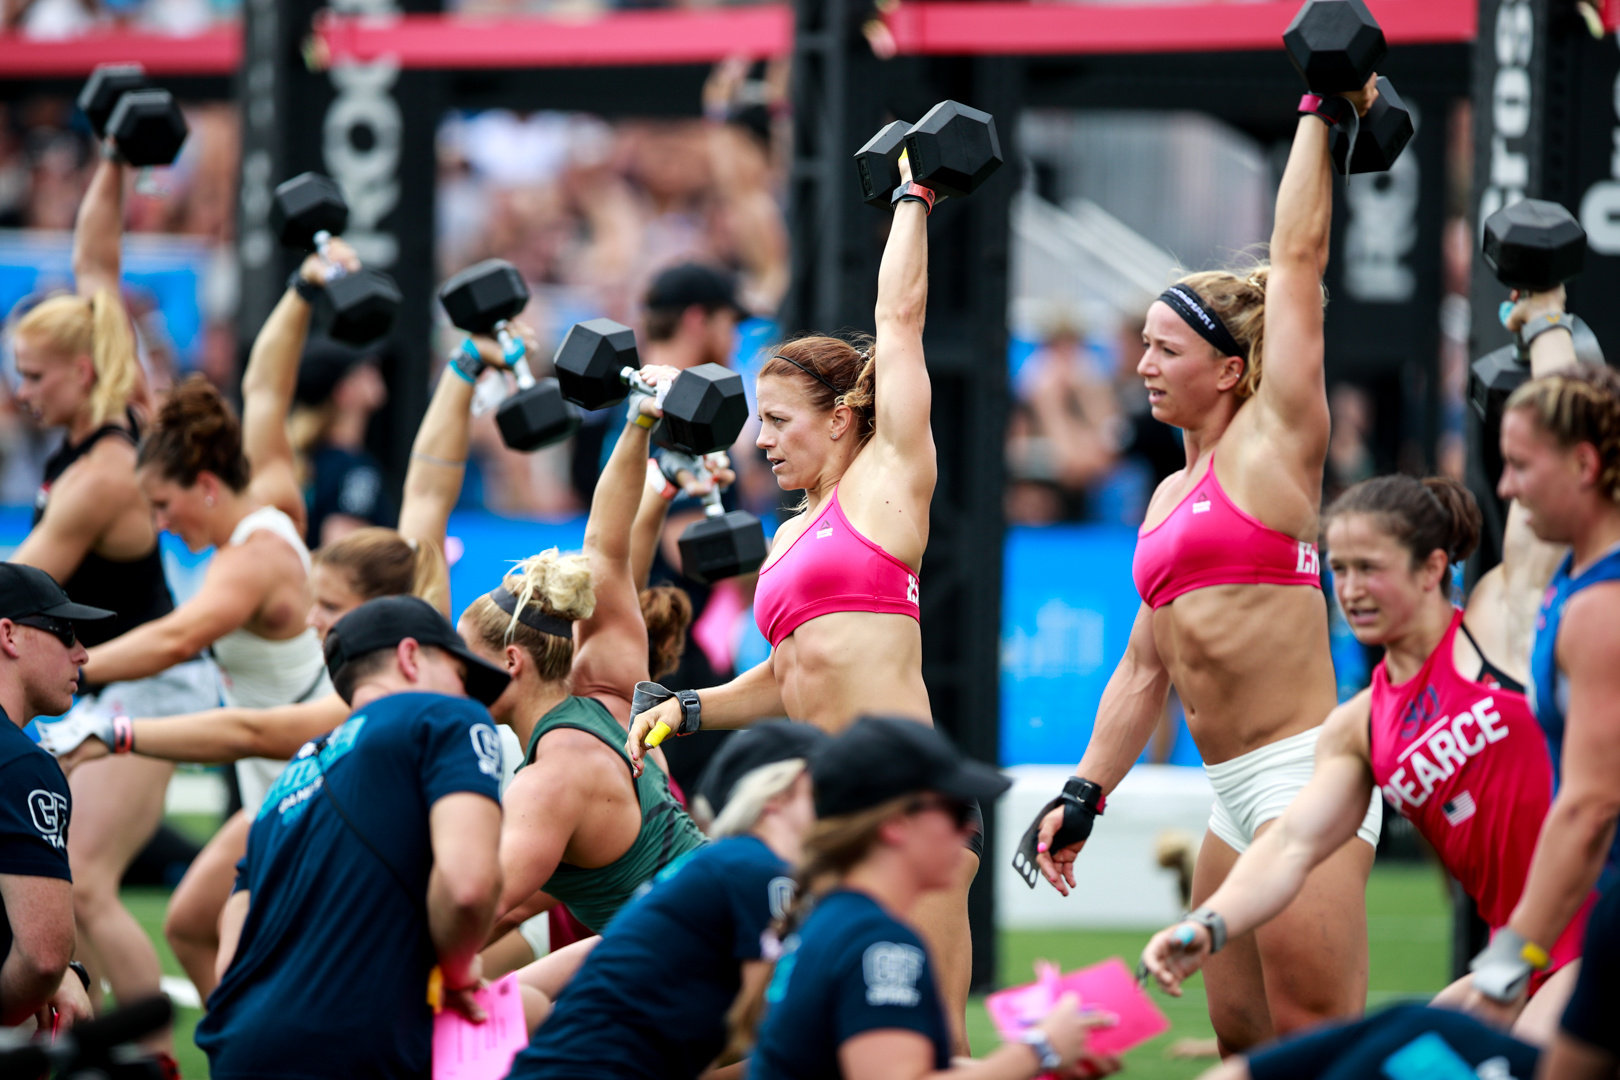 CrossFit Games Daily Schedule